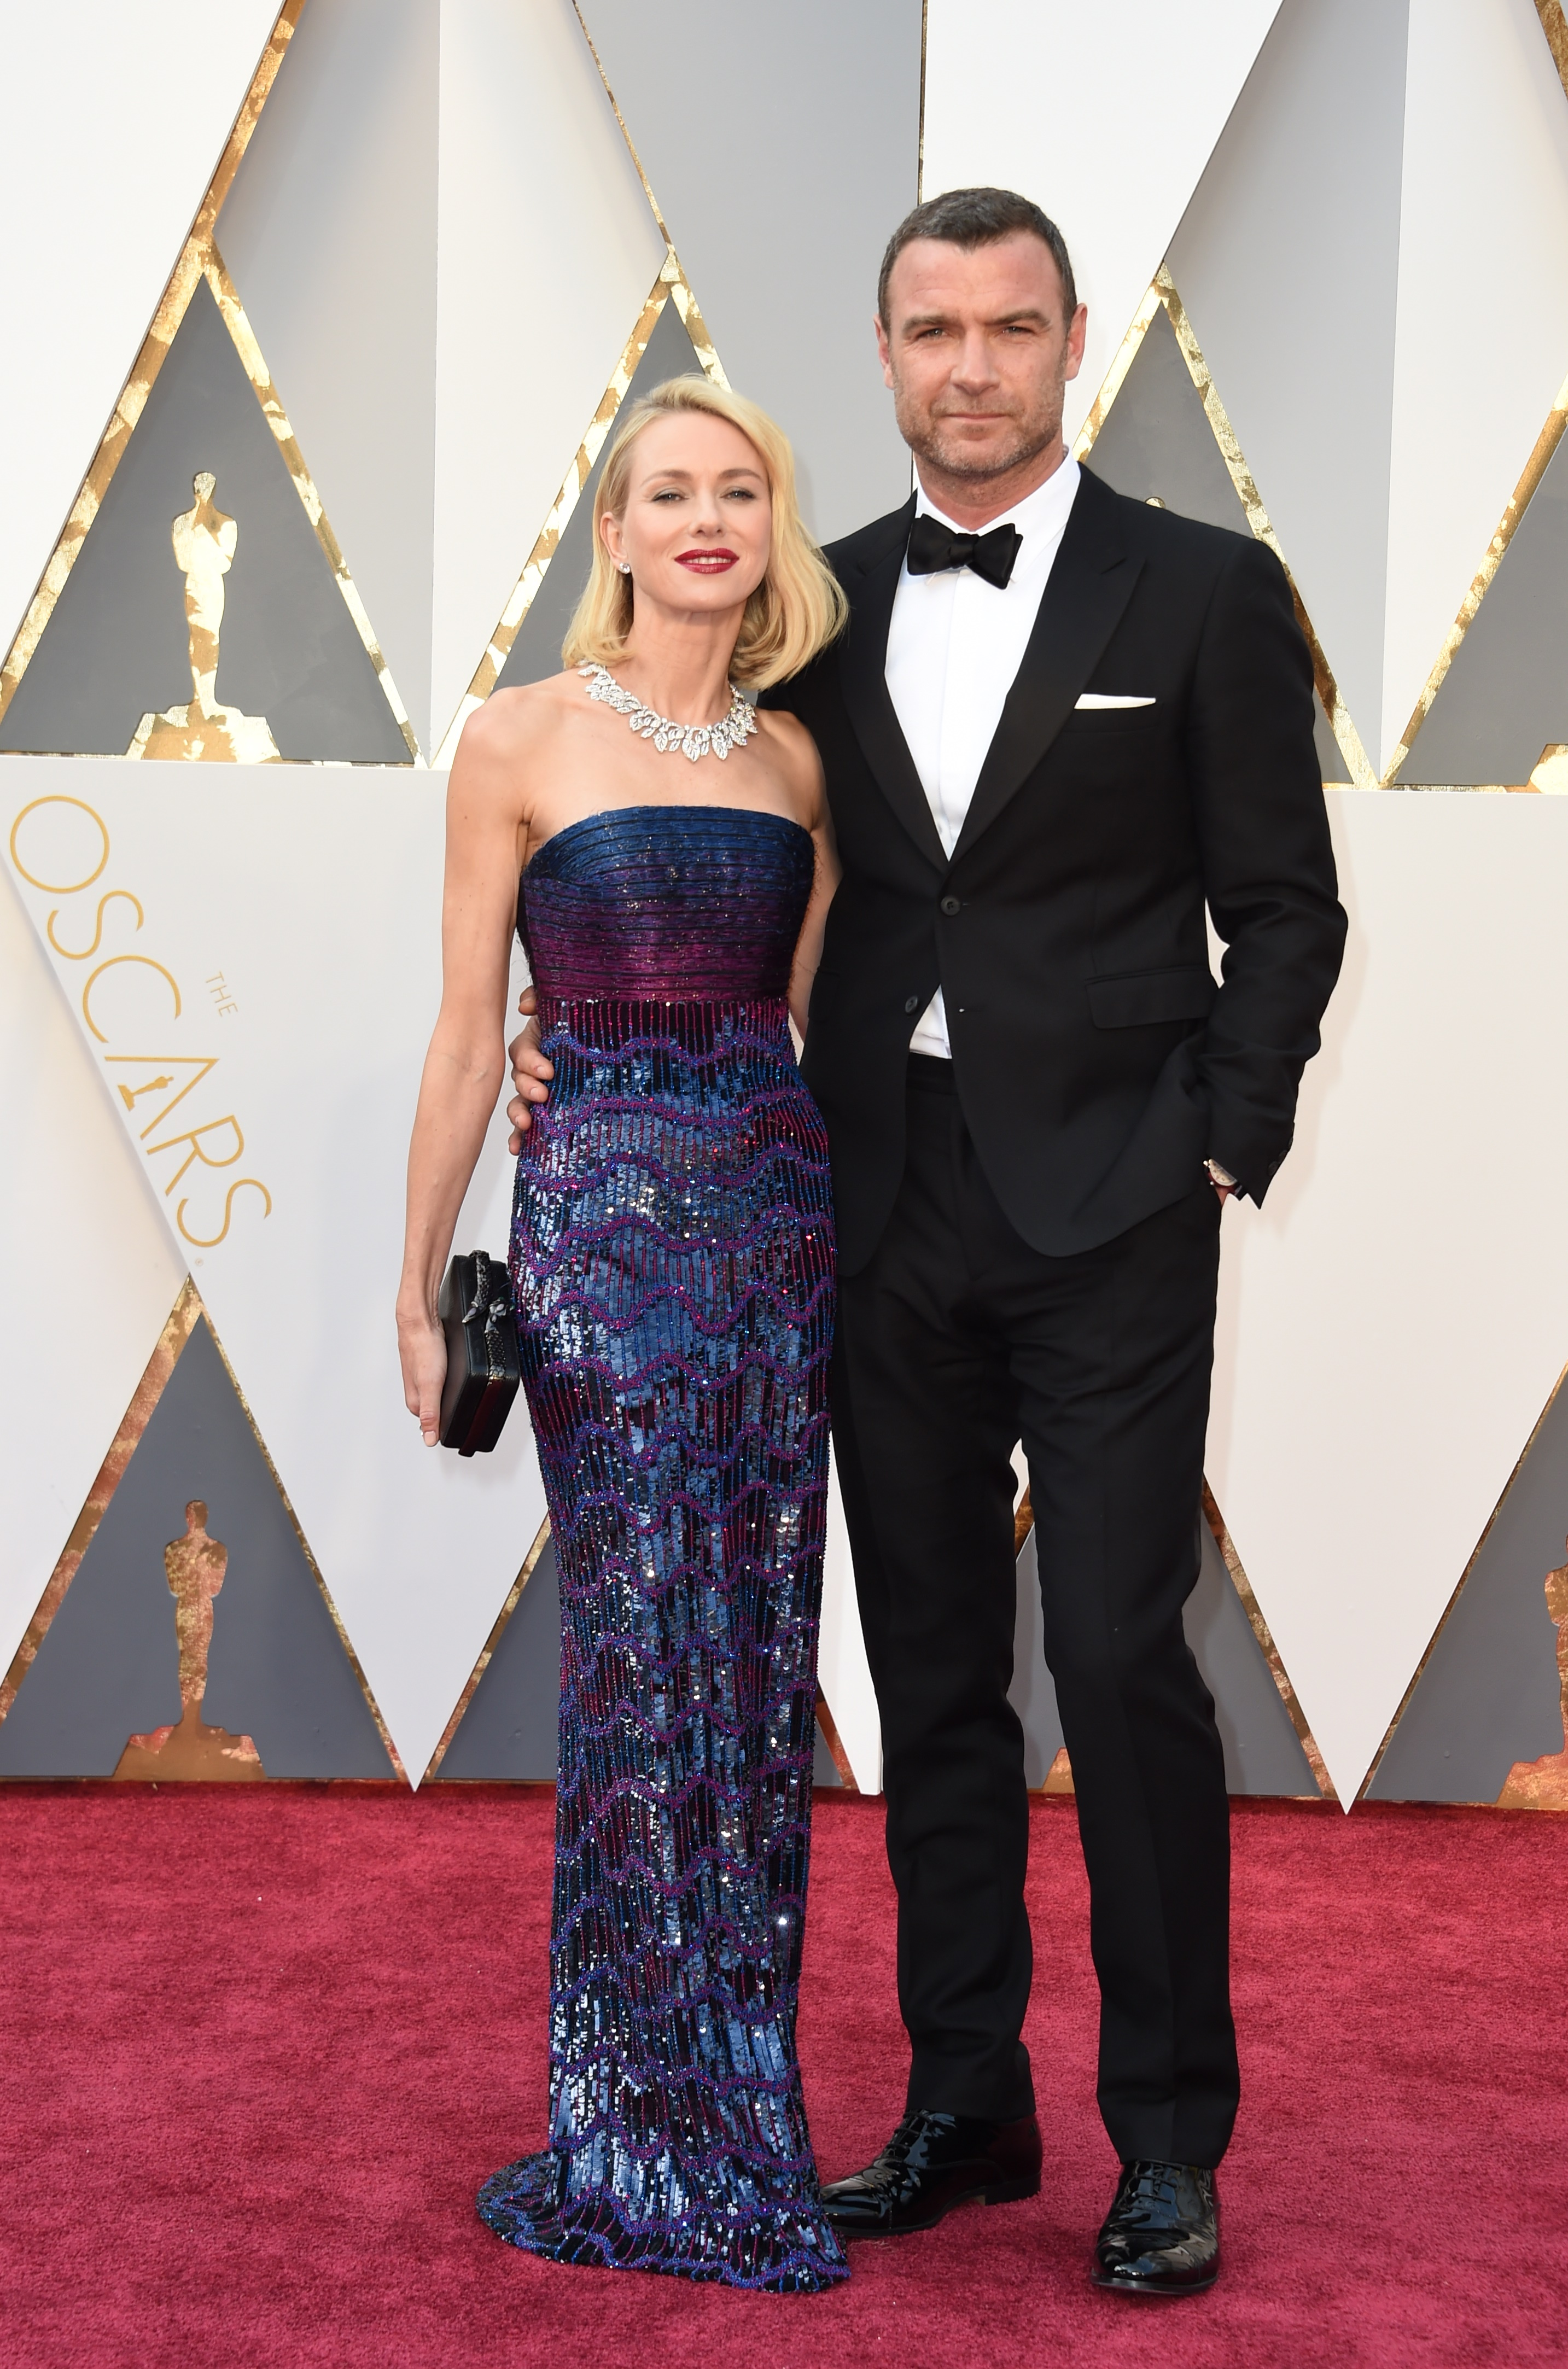 Naomi Watts and Liev Schreiber attend the 88th Annual Academy Awards on Feb. 28, 2016 in Hollywood, Calif.